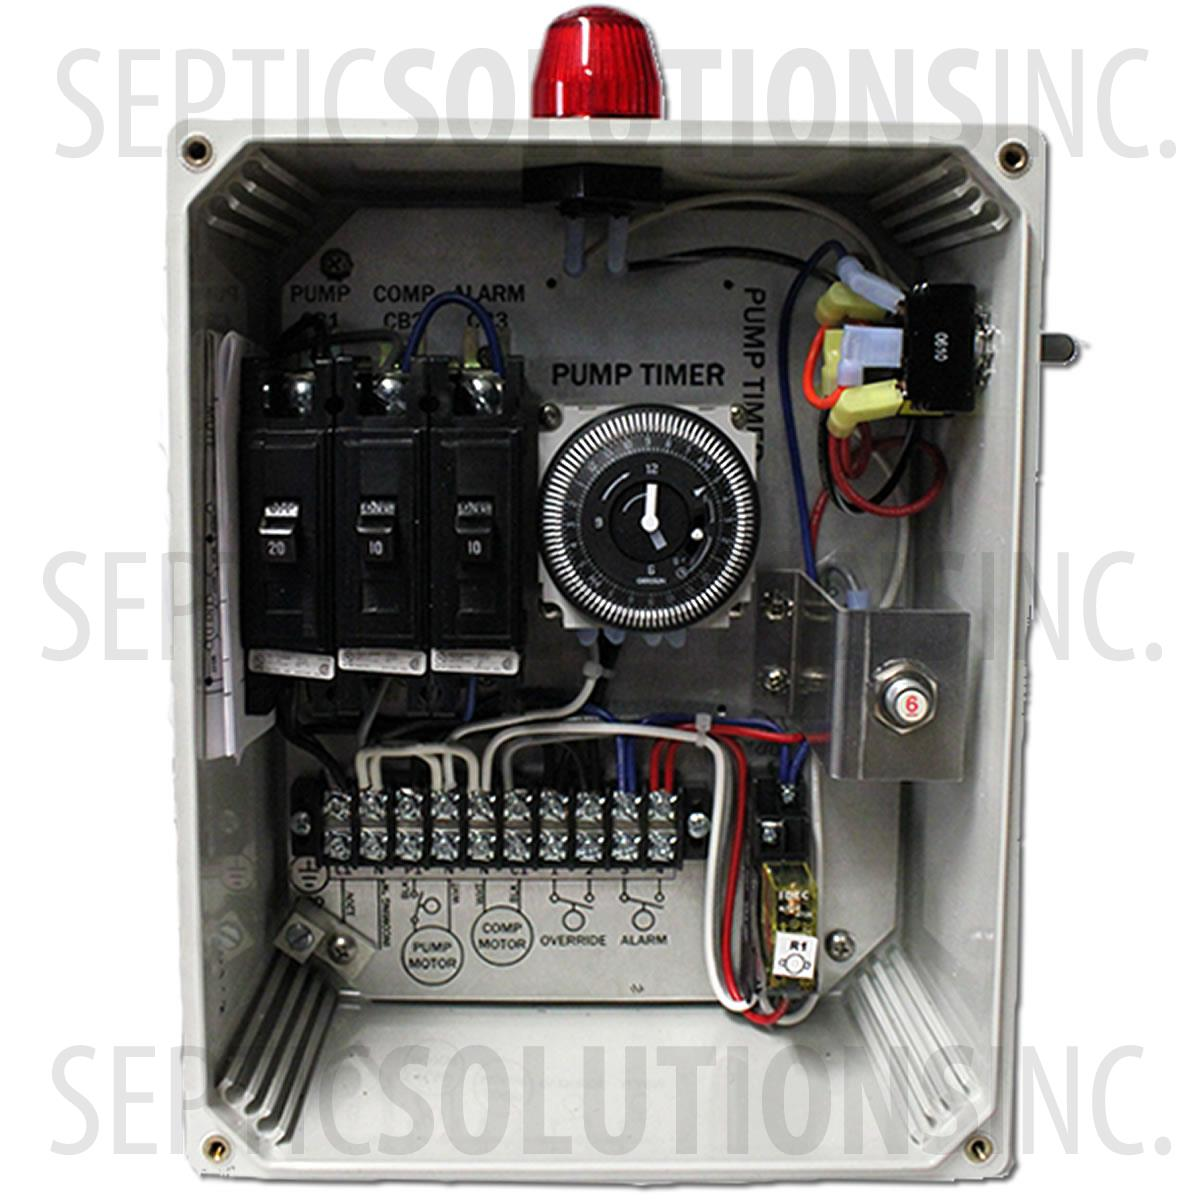 rwt 1l control panel for jet and norweco systems 50b009 rwt 1l rh septicsolutions com Electrical Control Panel Wiring Diagram Control Panel Electrical Wiring Basics